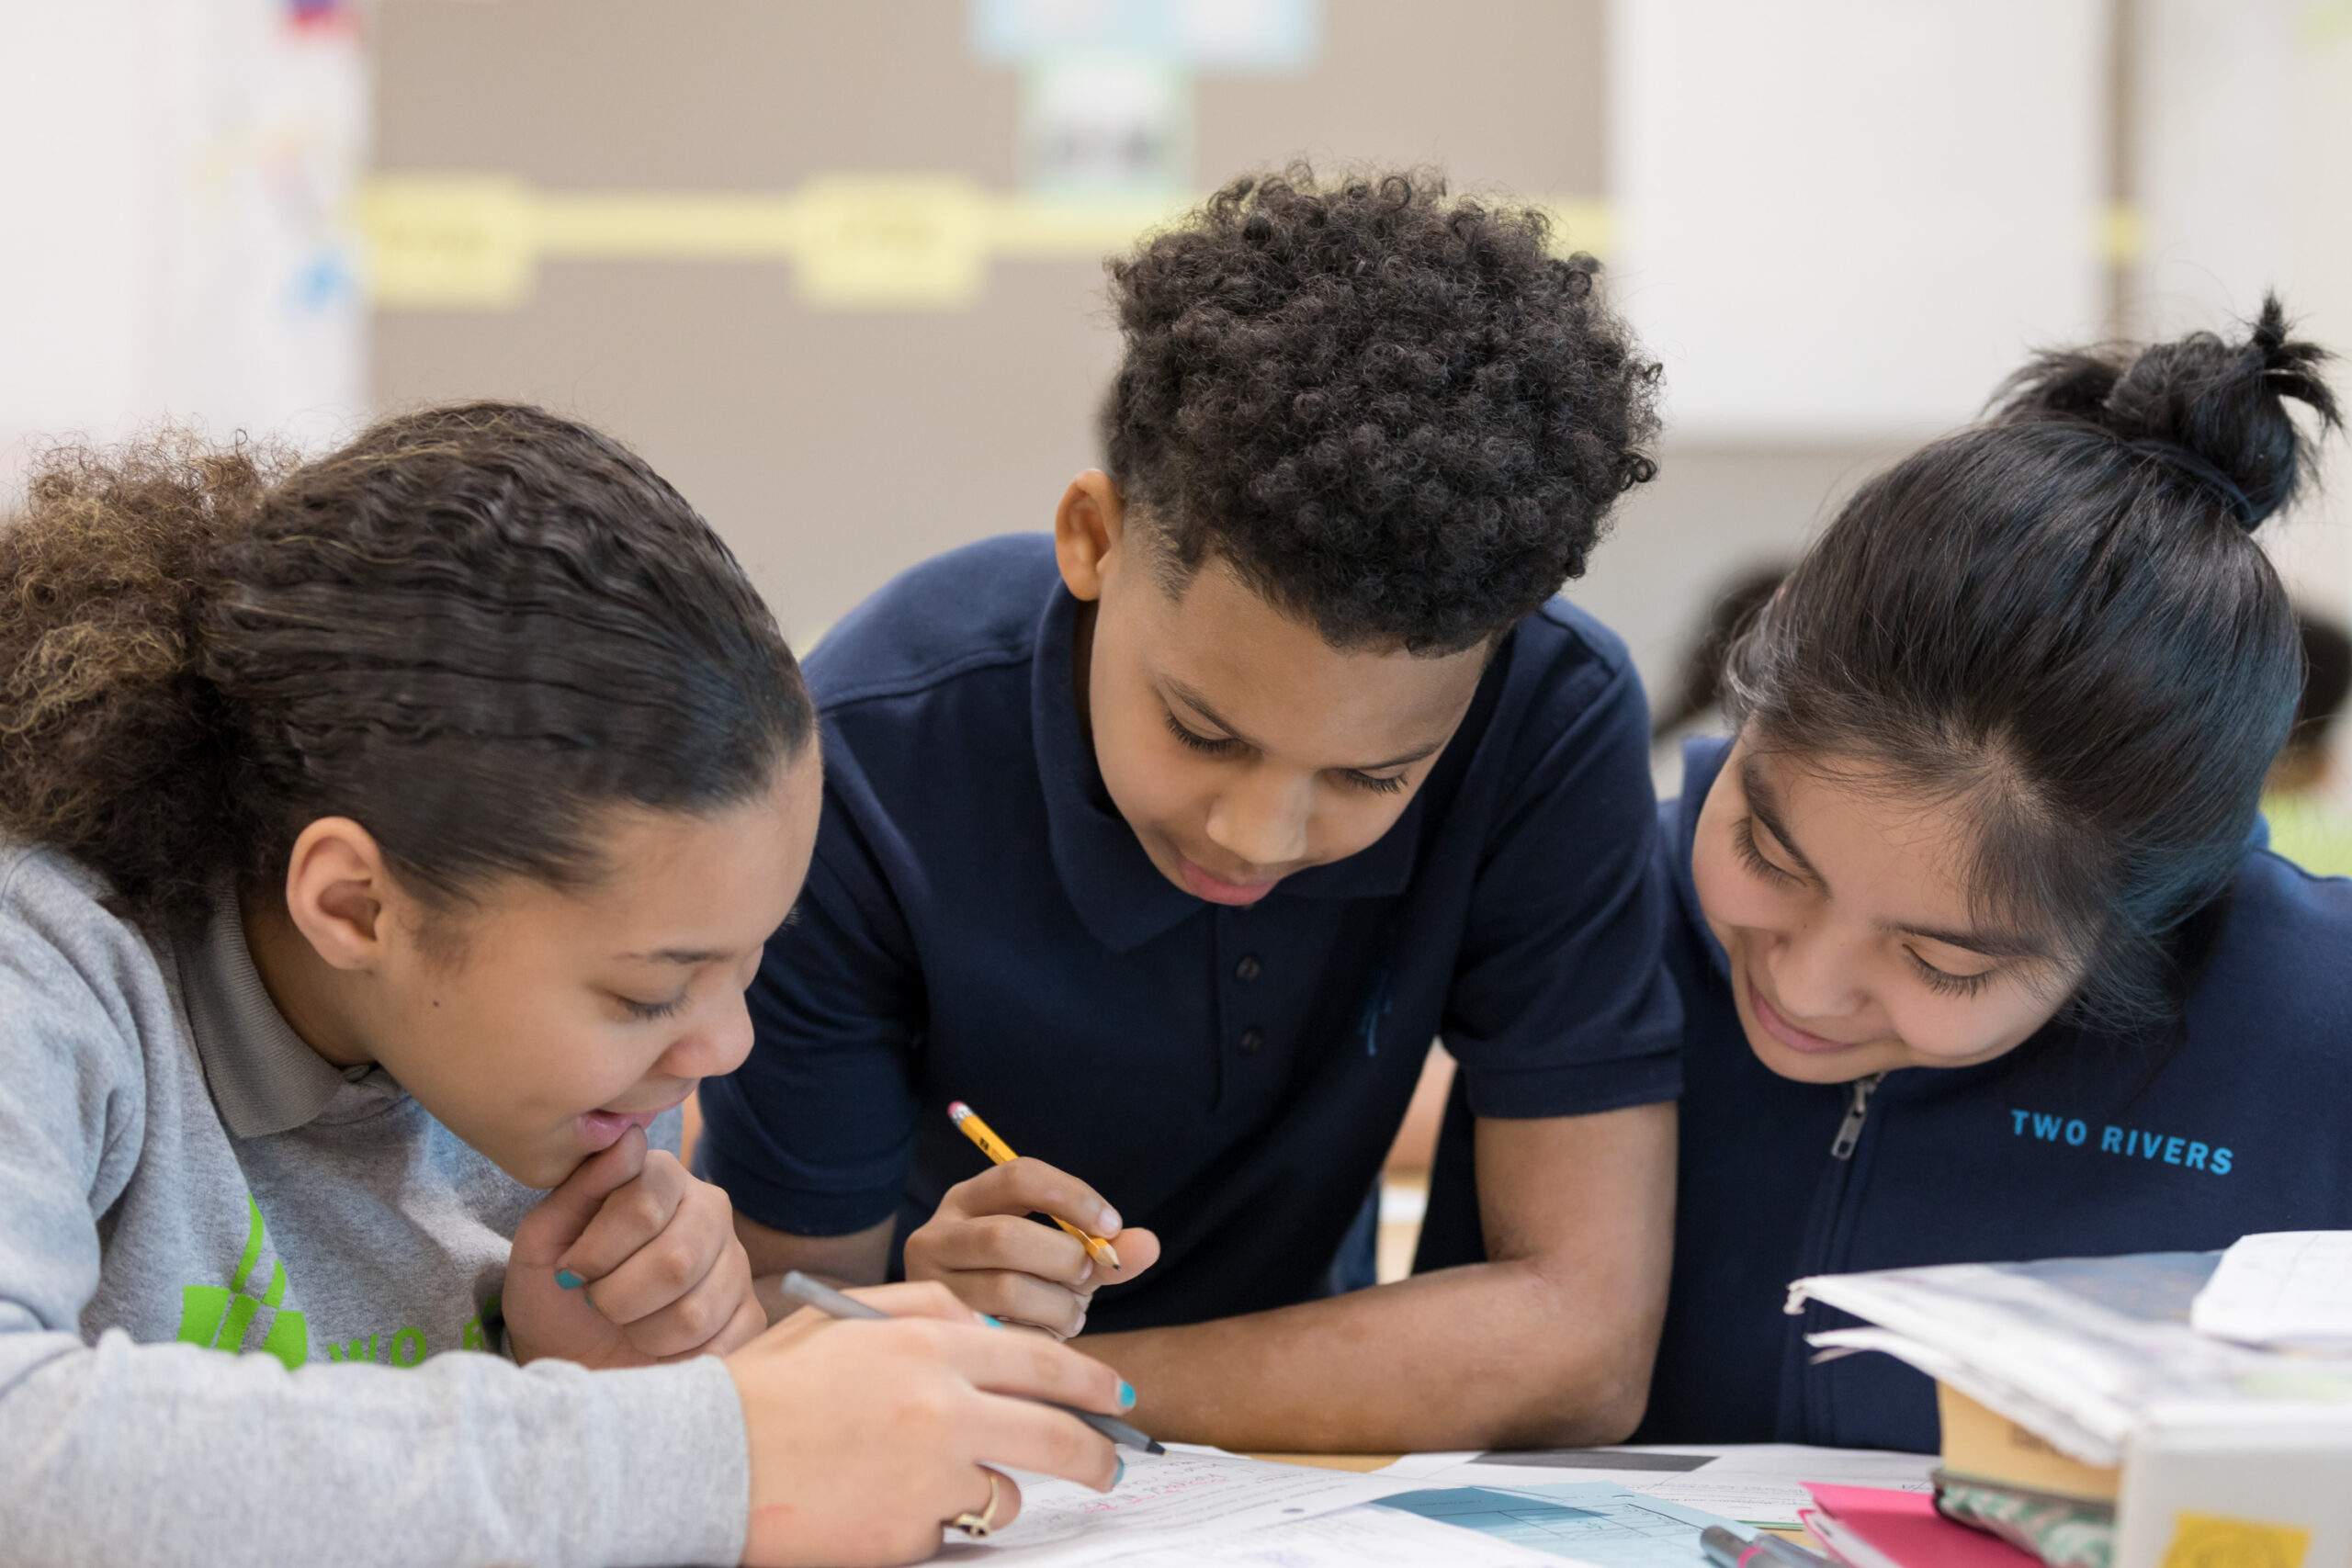 Two Rivers Public Charter Schools students work together